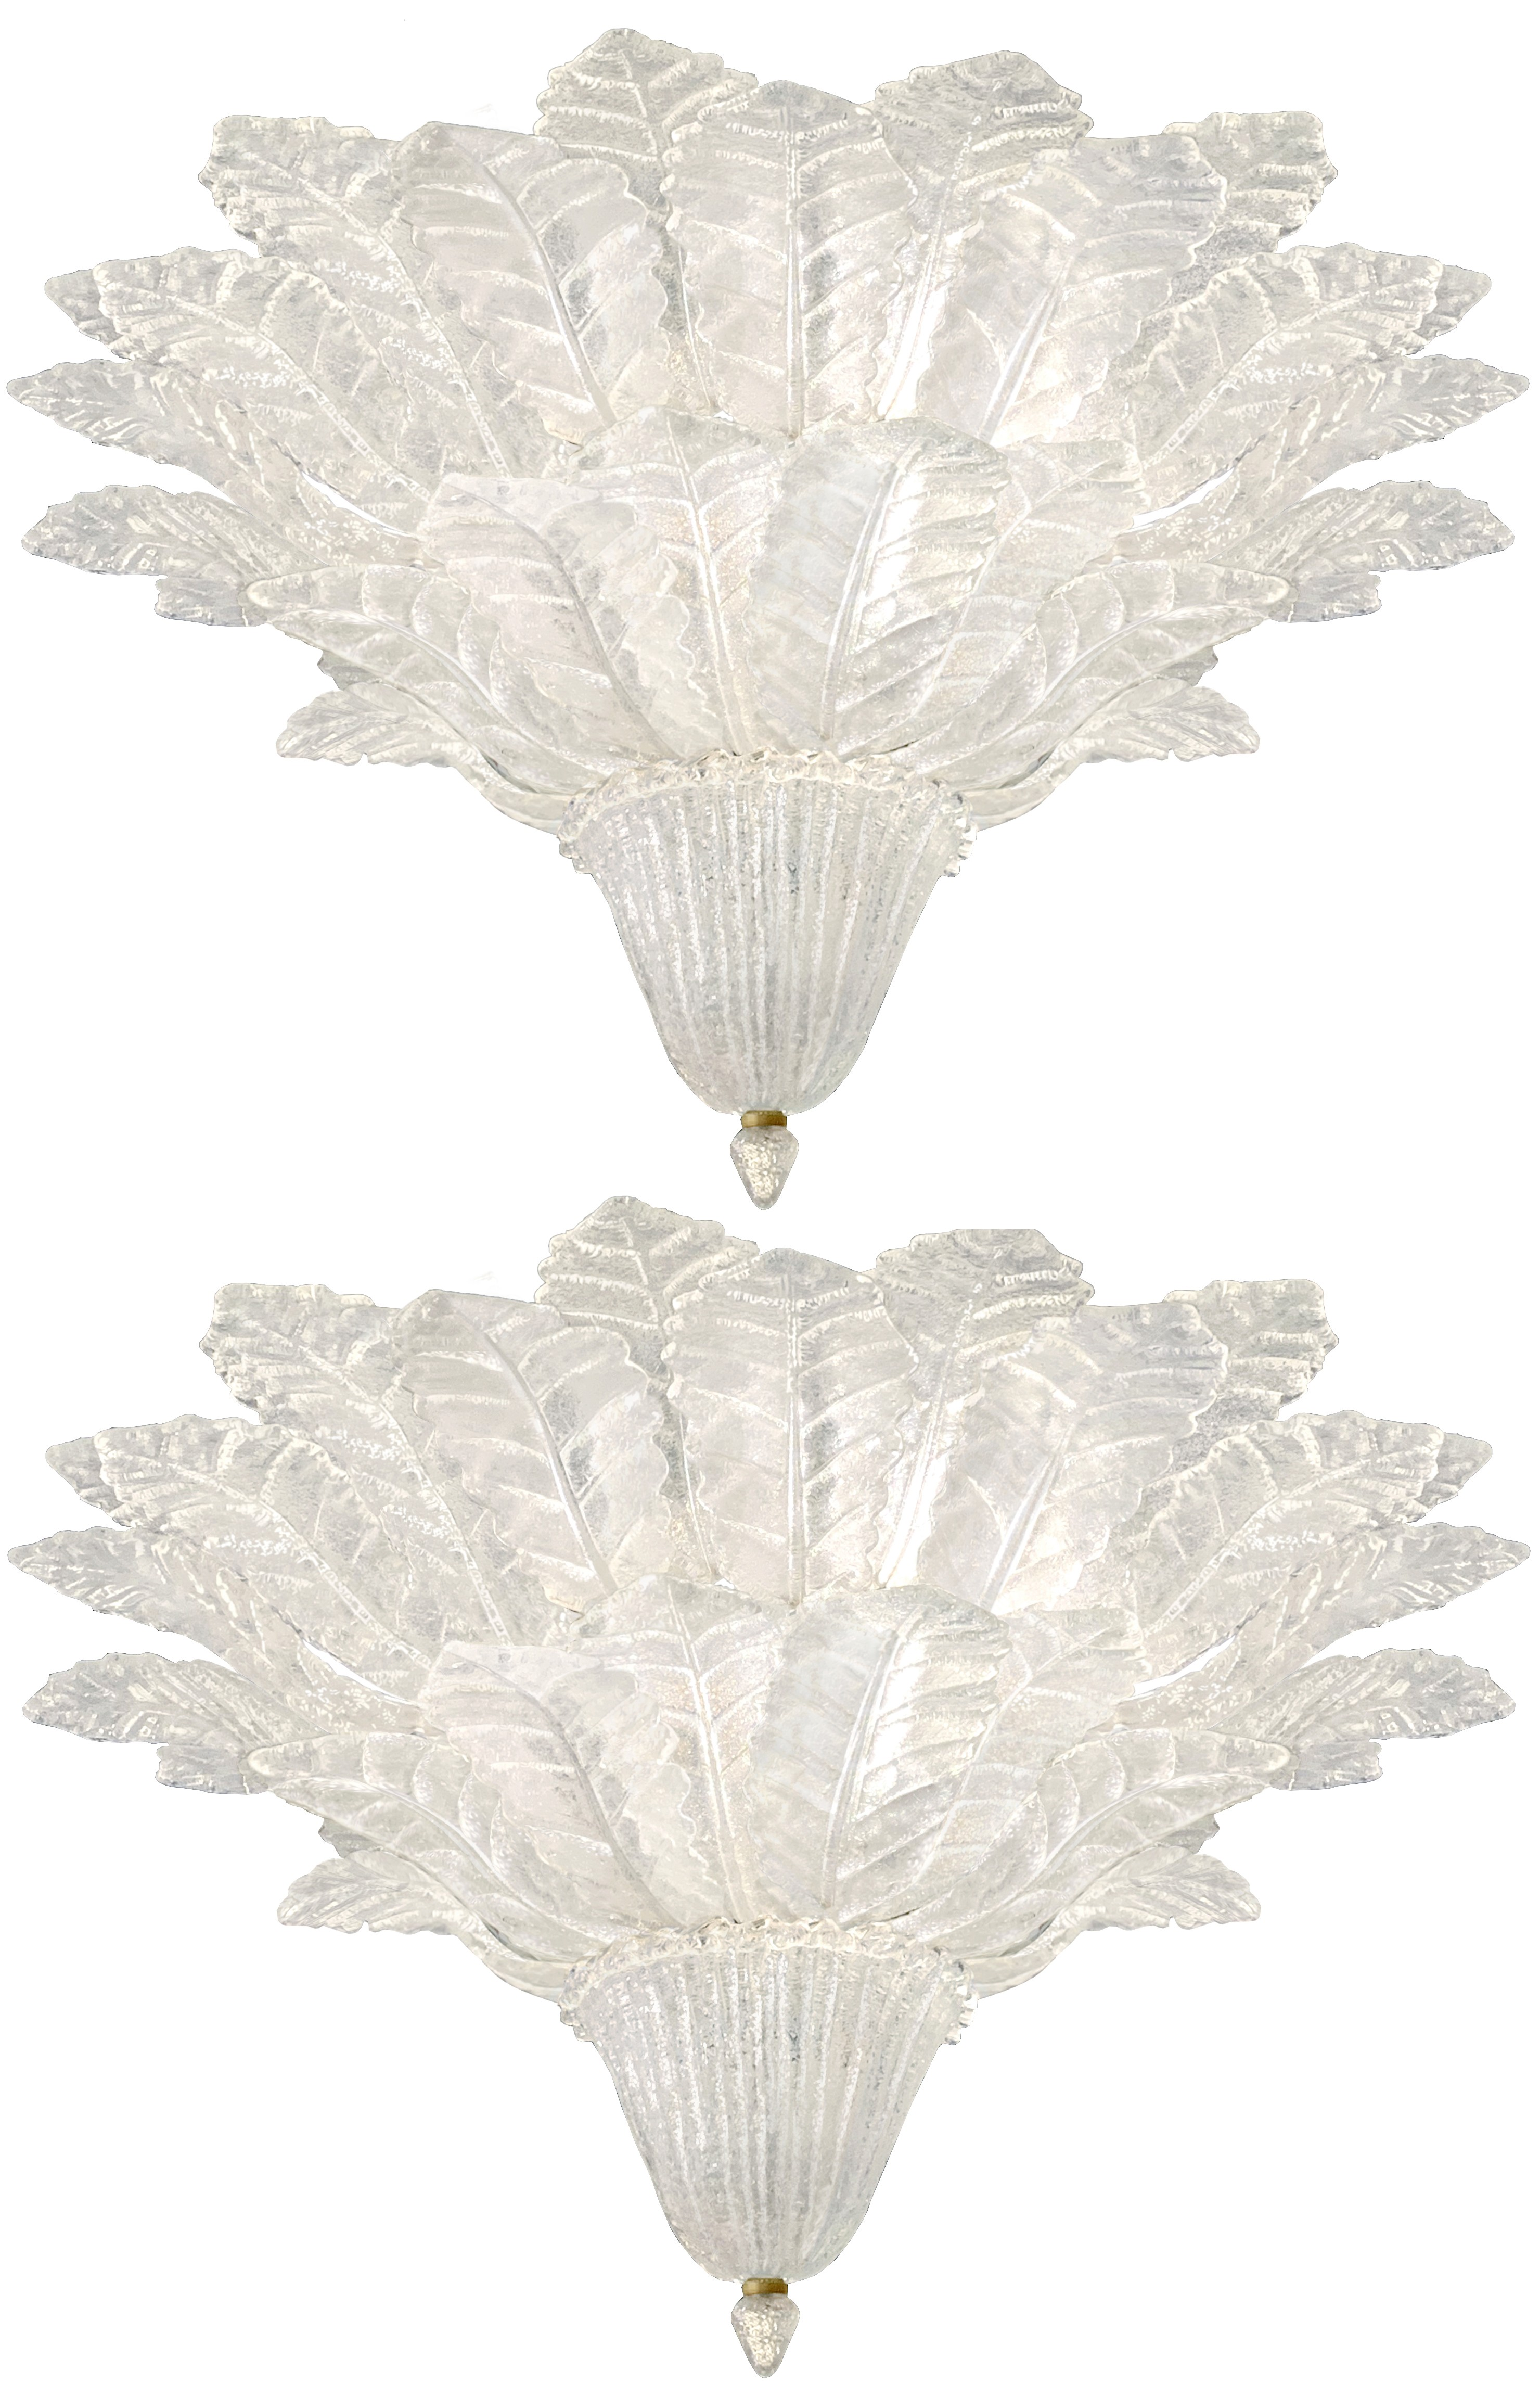 Pair of Barovier & Toso Glass Plume Chandeliers